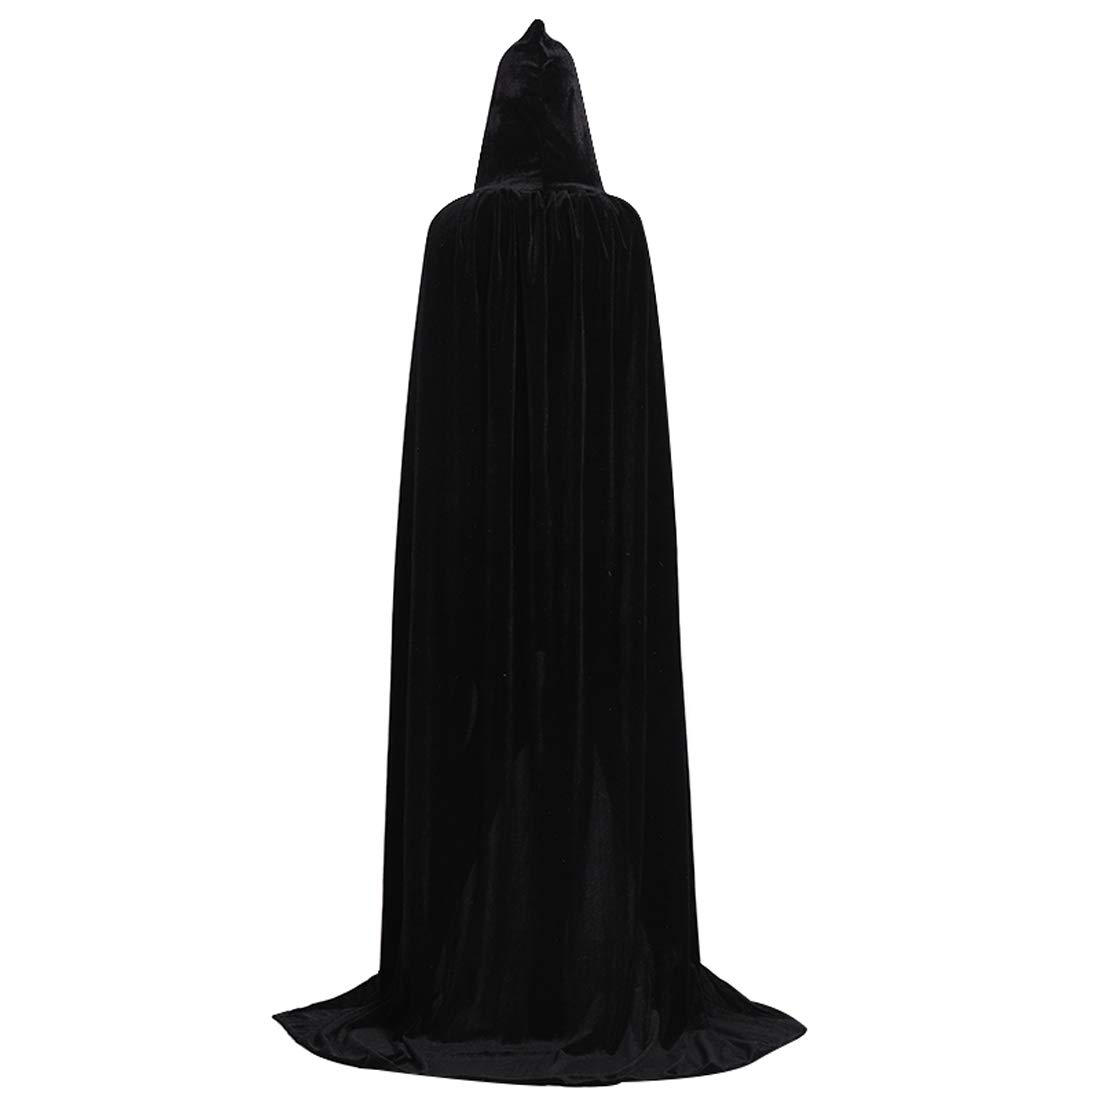 Wgior Unisex Death Hooded Cloak Full Long Velvet Cape for Halloween Costume Masquerade Cloak (M, Black)